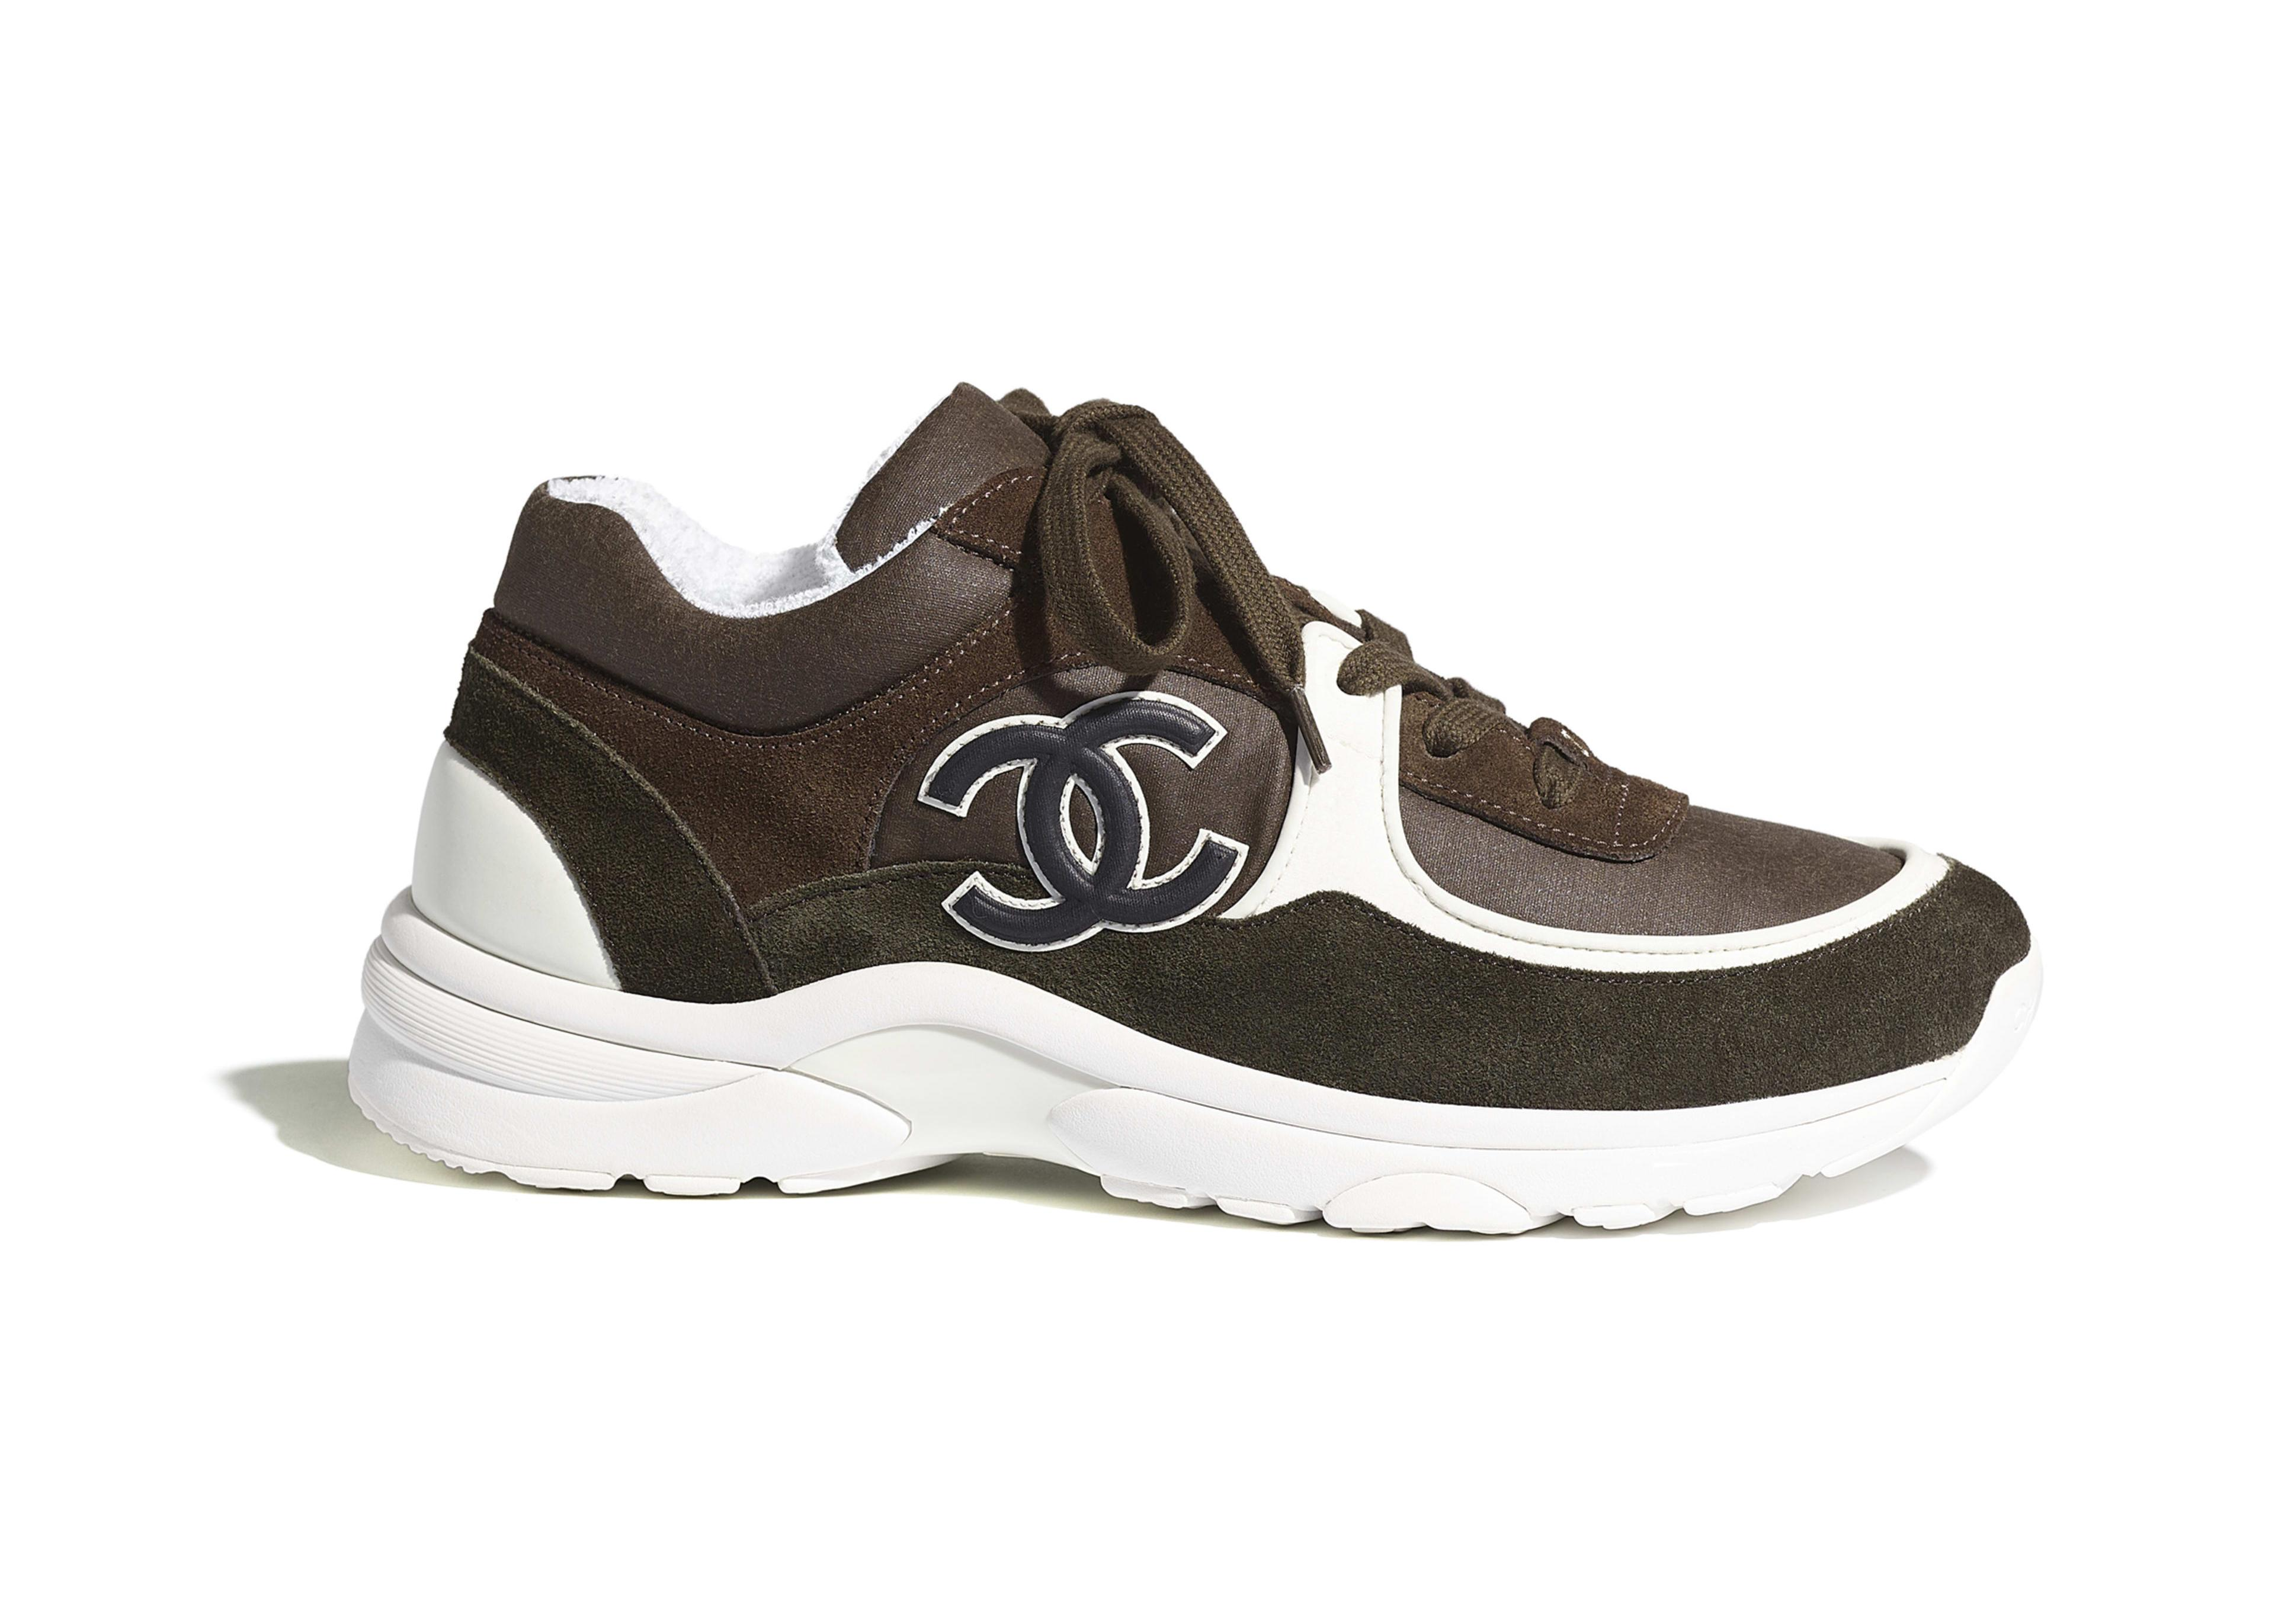 Chanel Low Top Trainer Brown Green - Lyst